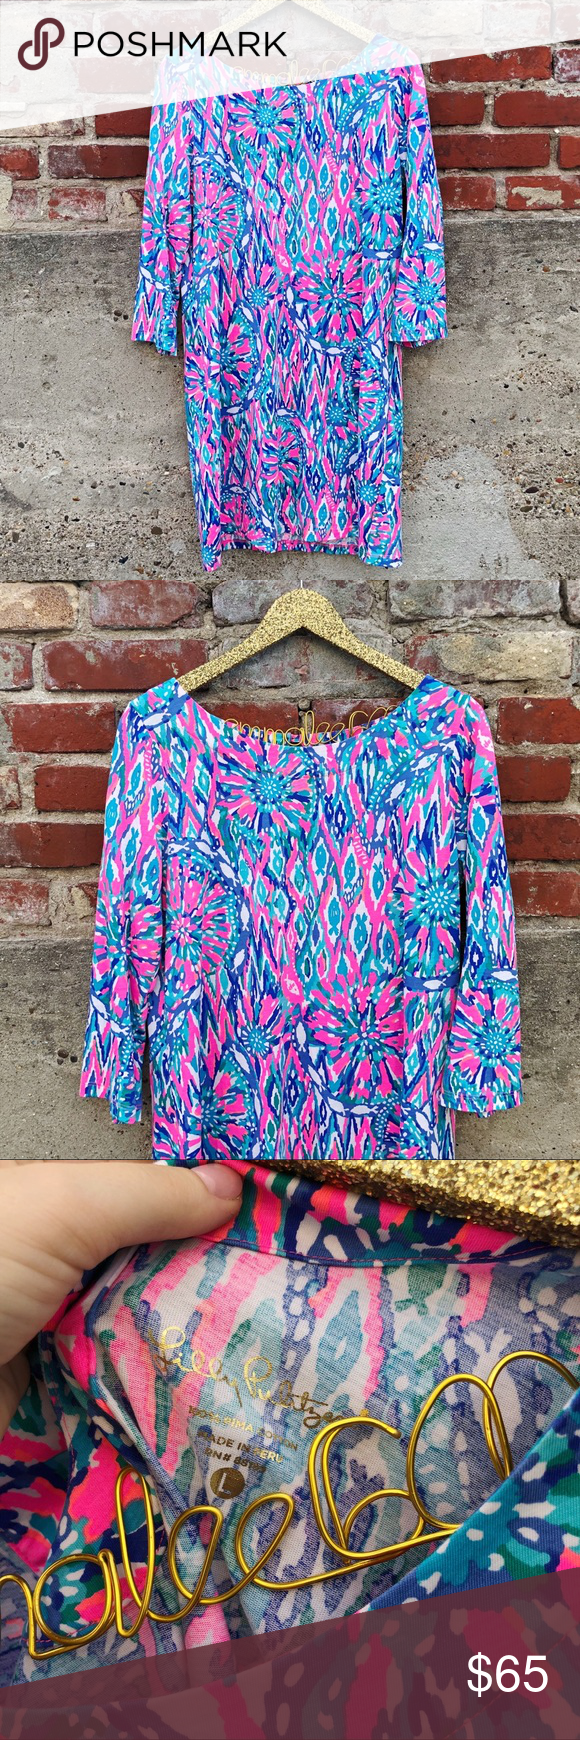 f343a983dcf Lilly Pulitzer Shake it Up Bay Dress Excellent condition